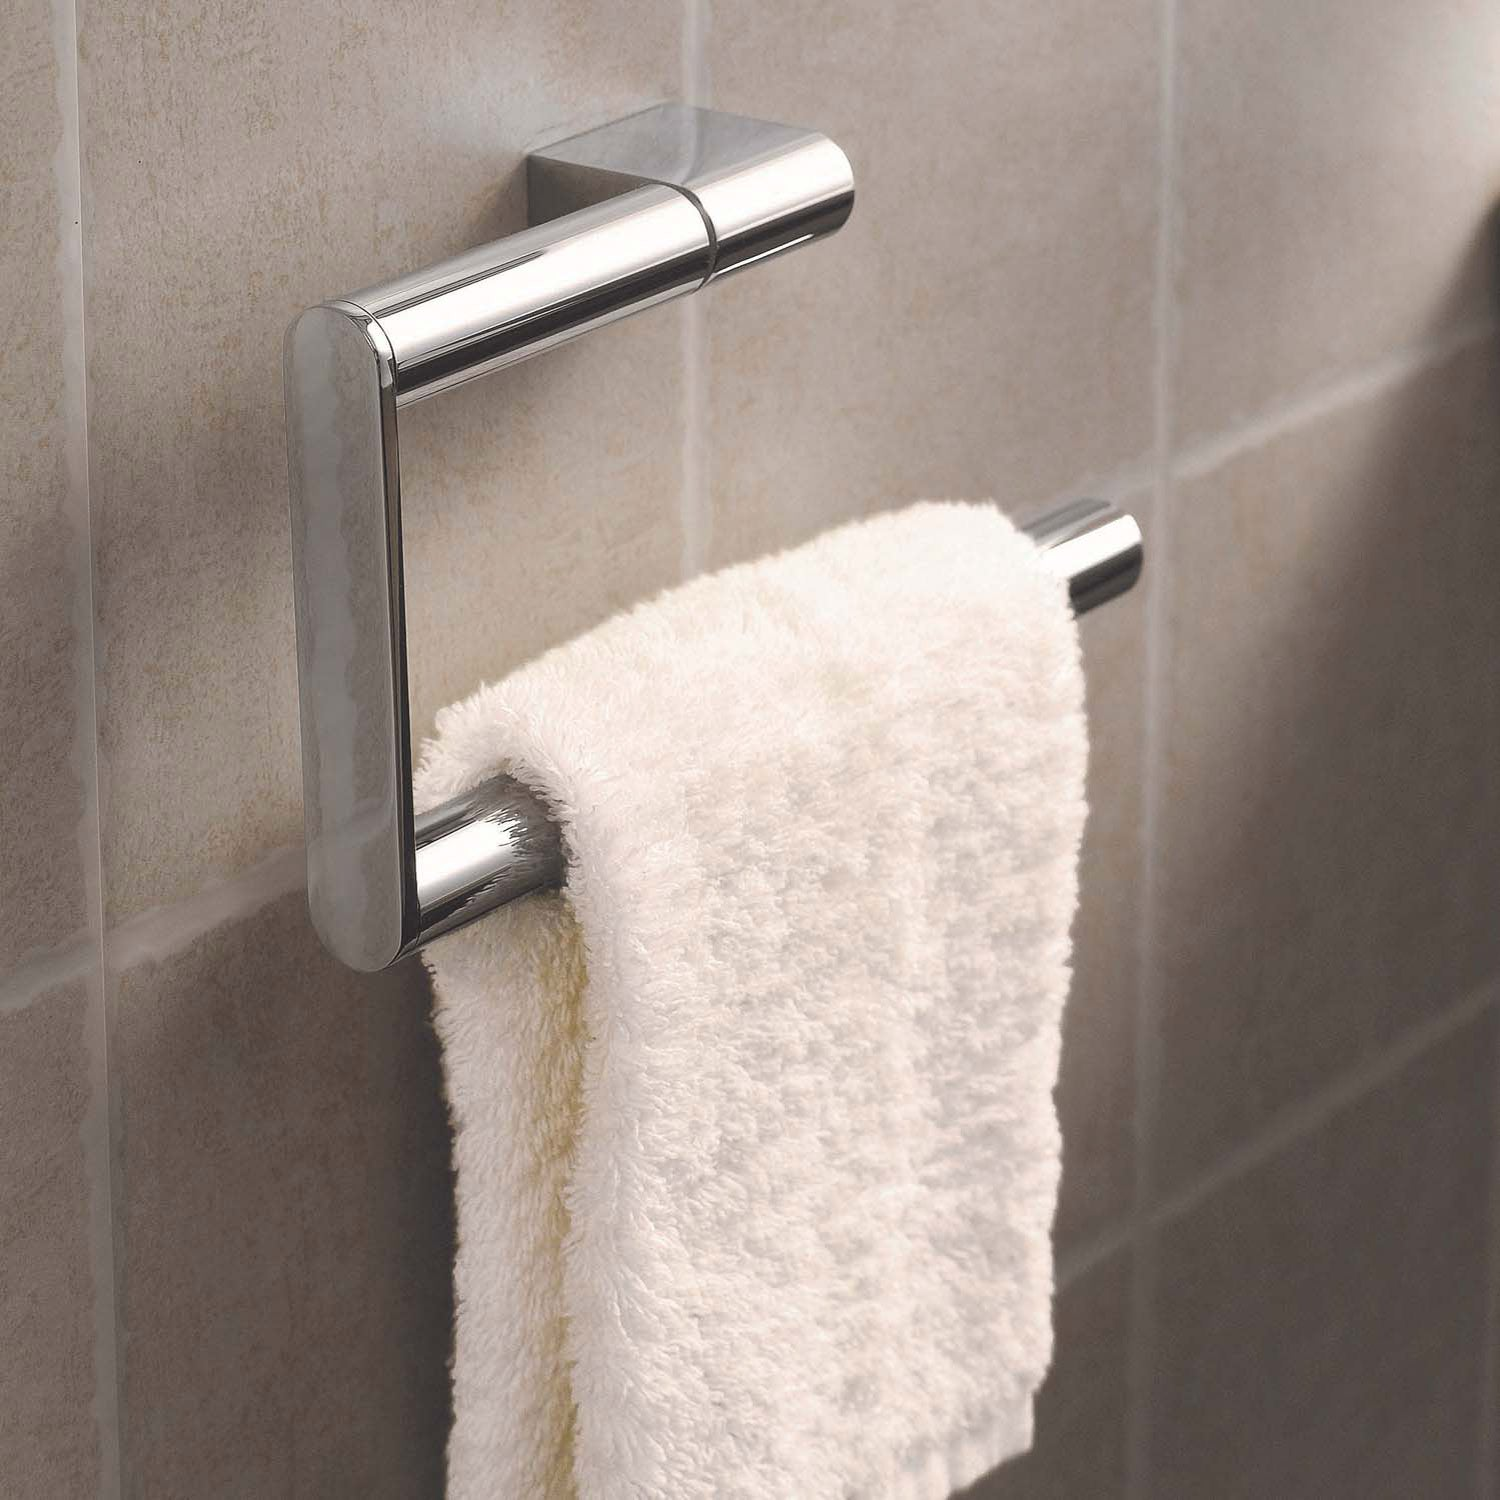 Hinged Modale Toilet Roll Holder with a chrome finish and no cover lifestyle image